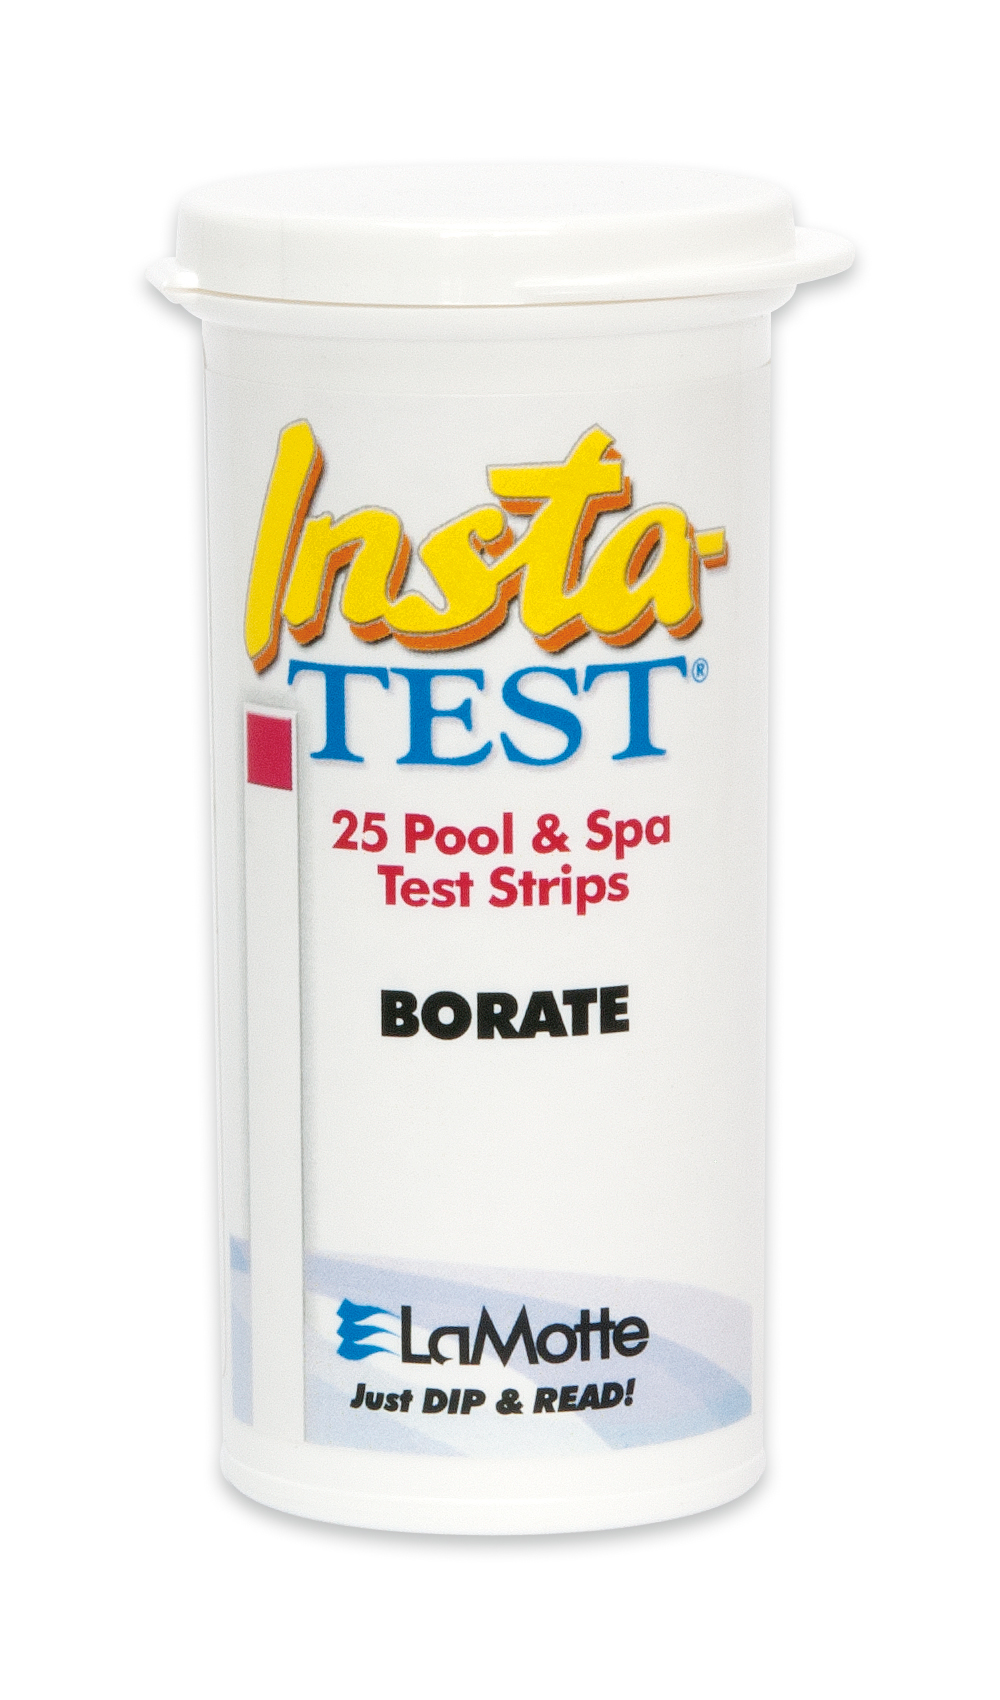 Insta-Test Borate Pool & Spa Test Strips